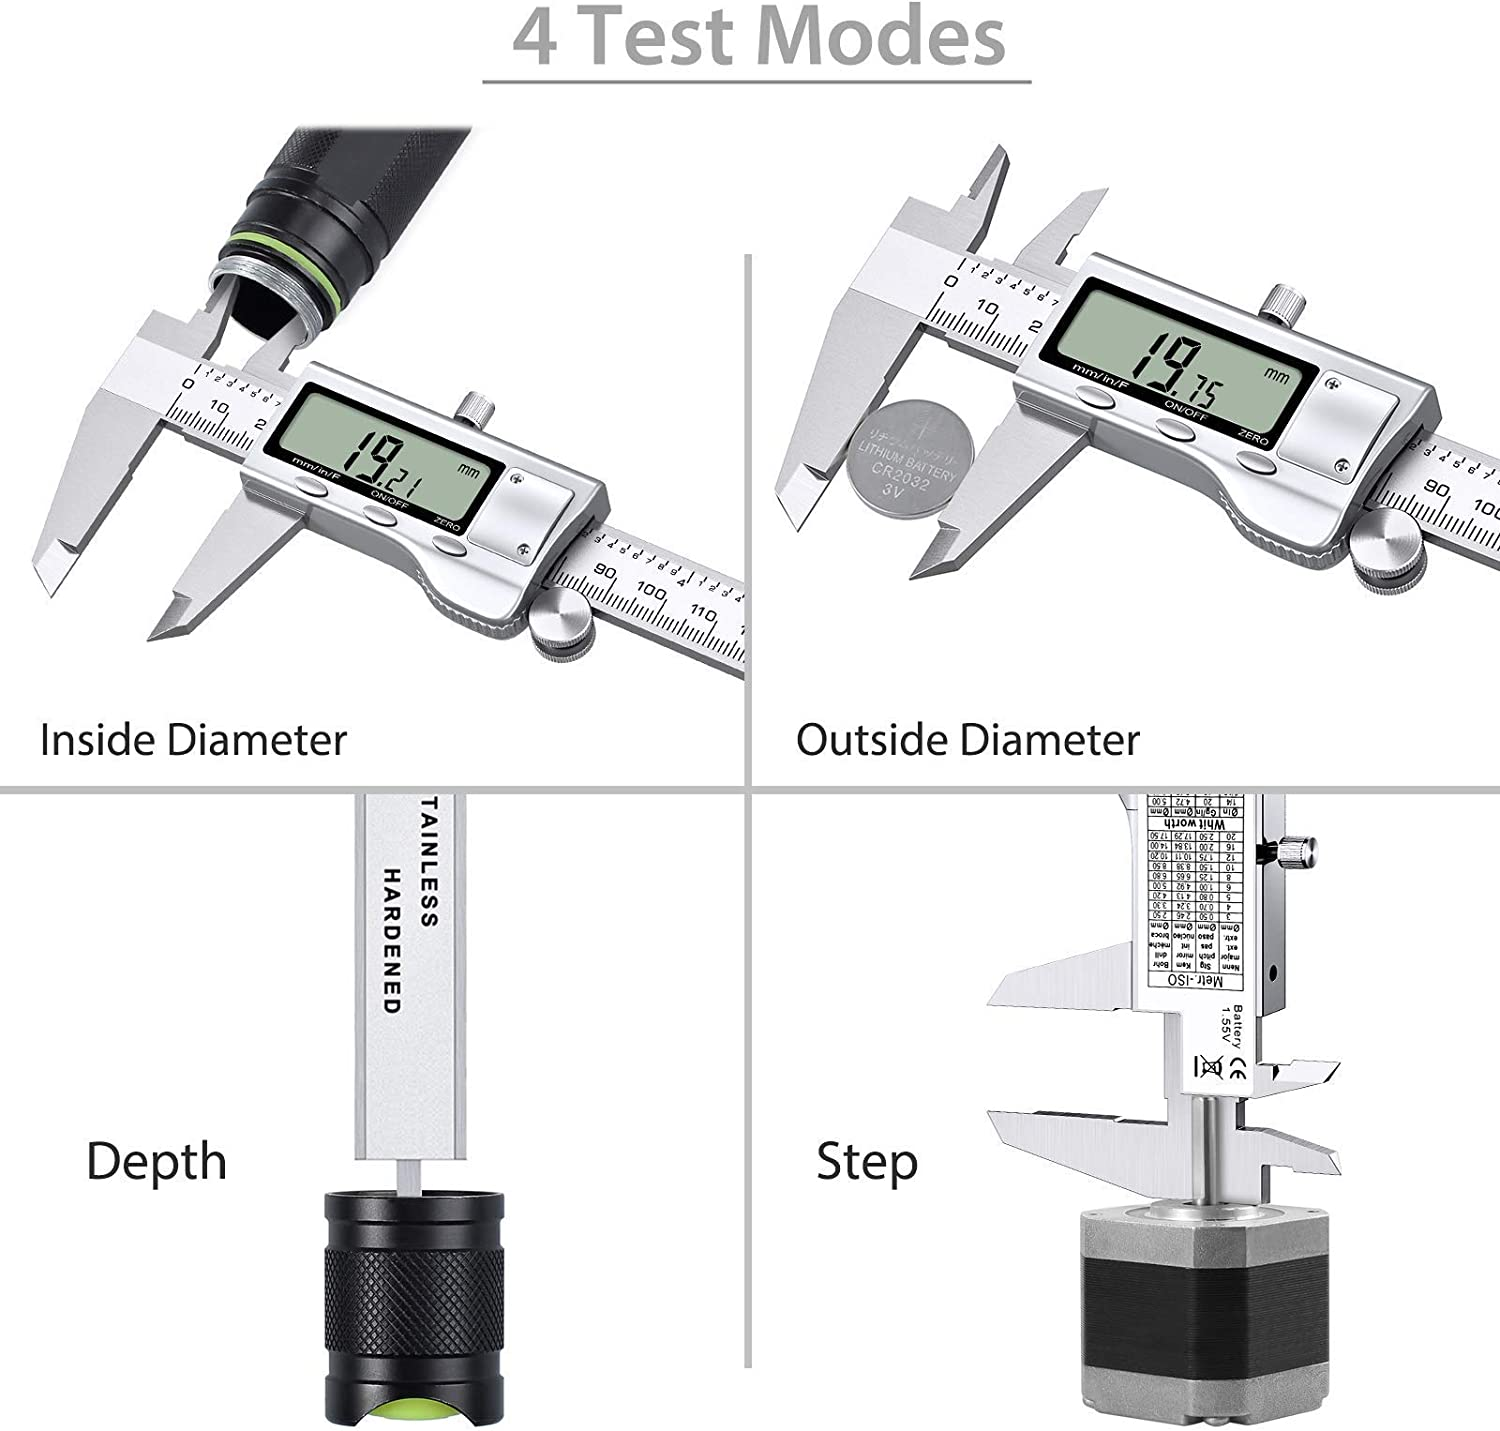 Proster 6 Vernier Caliper Angle Ruler with Height Gauge